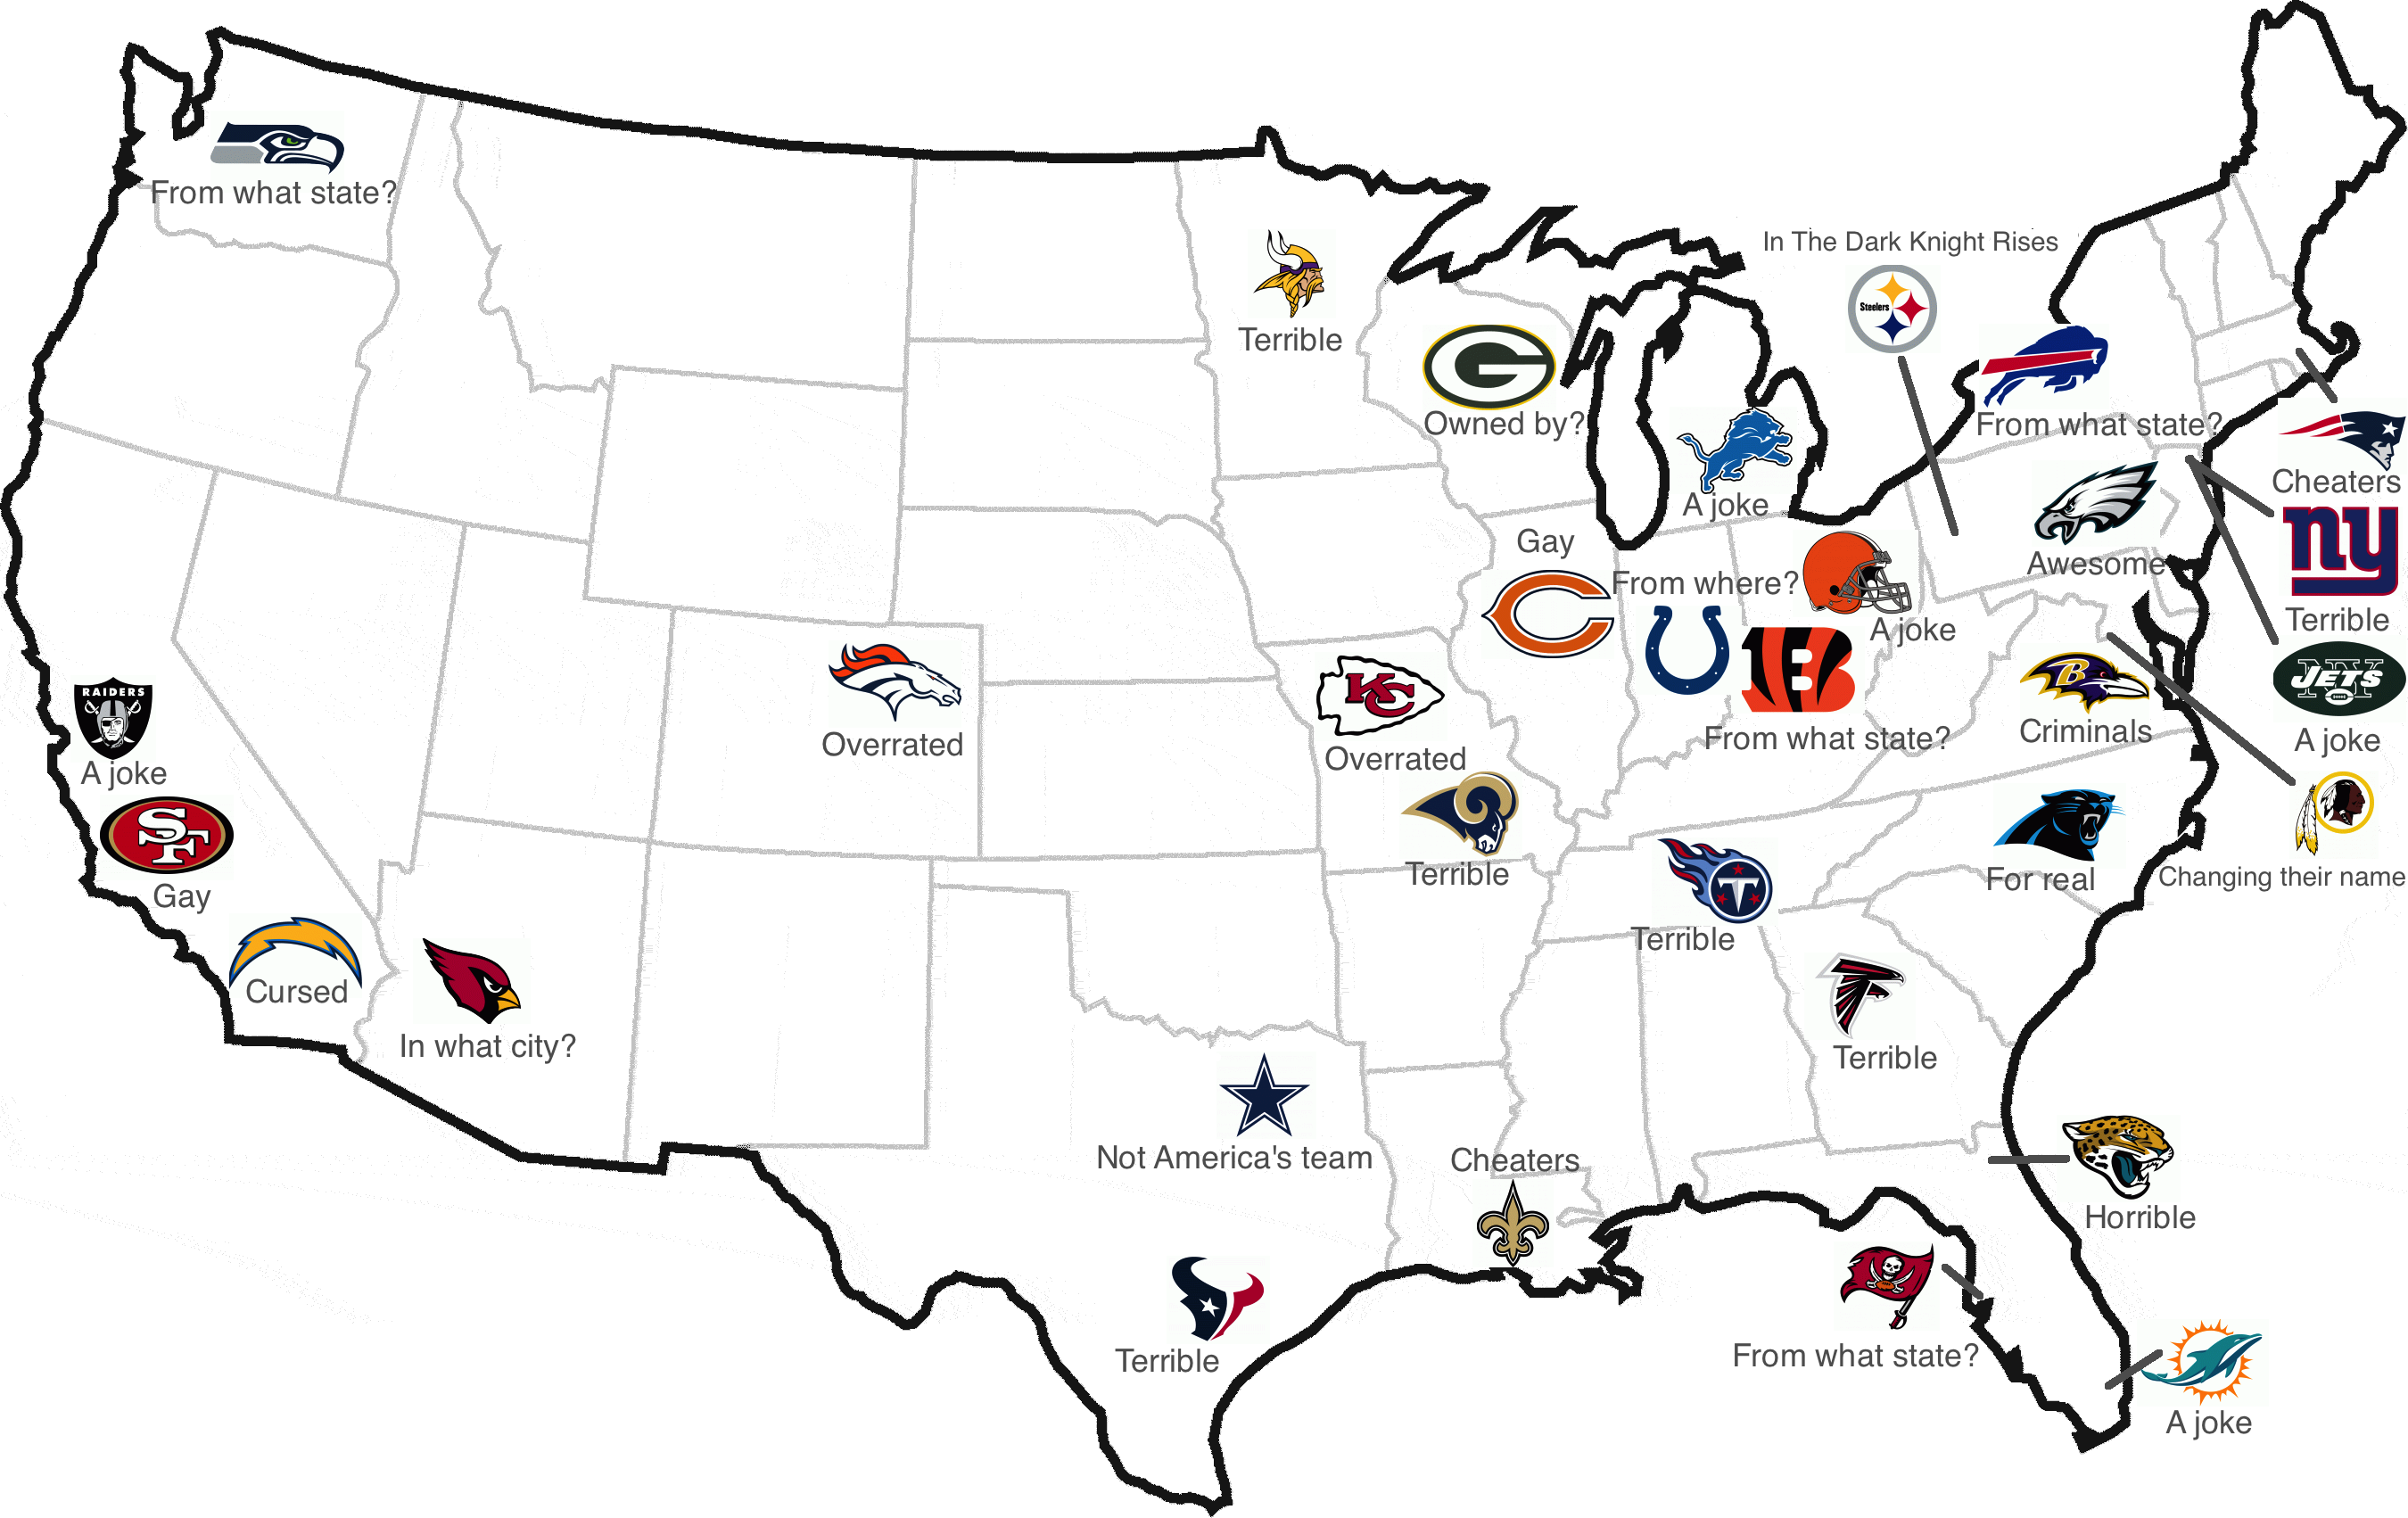 Nfl Cities Map Pictures To Pin On Pinterest PinsDaddy - Us map nfl teams